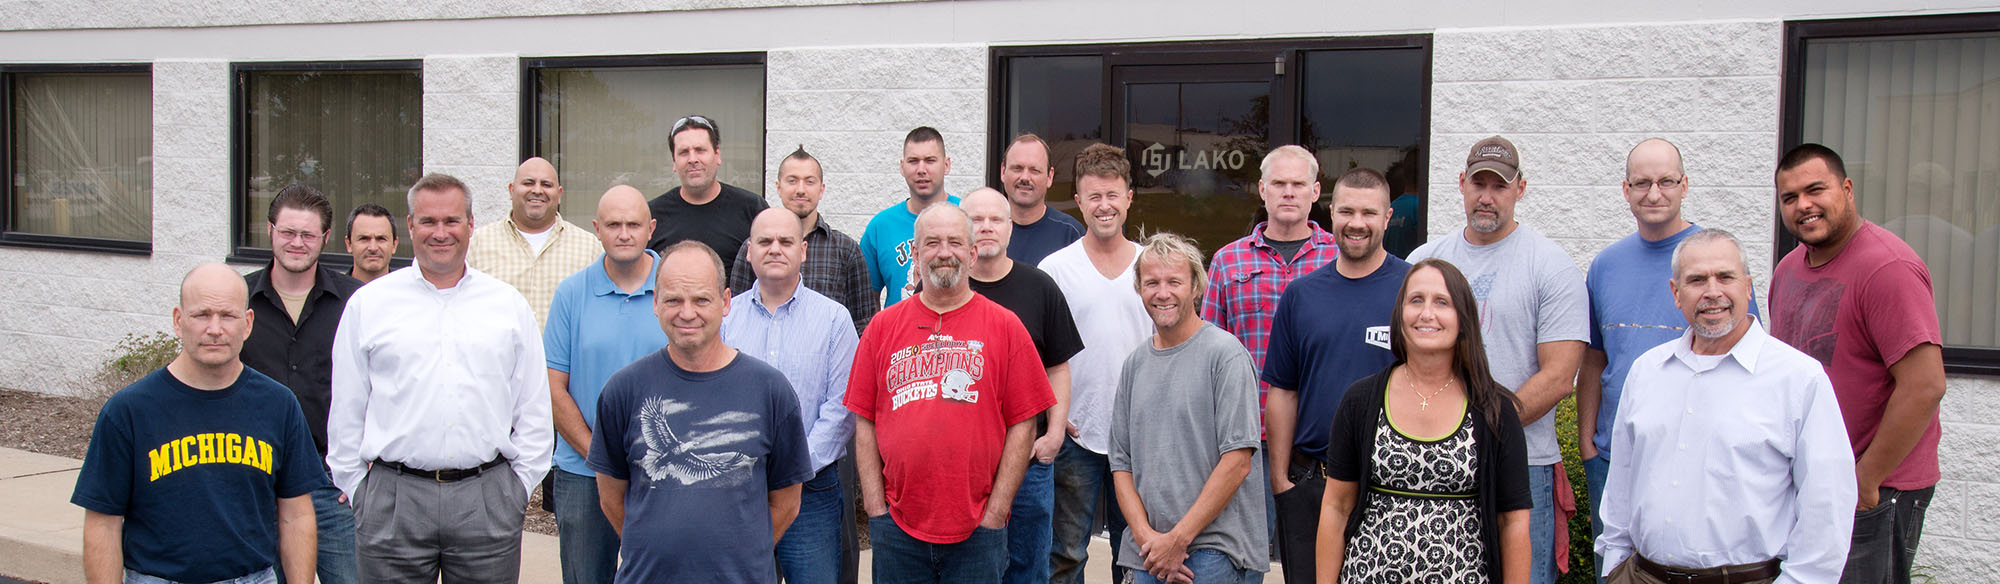 Lako Tool Employee Group Picture